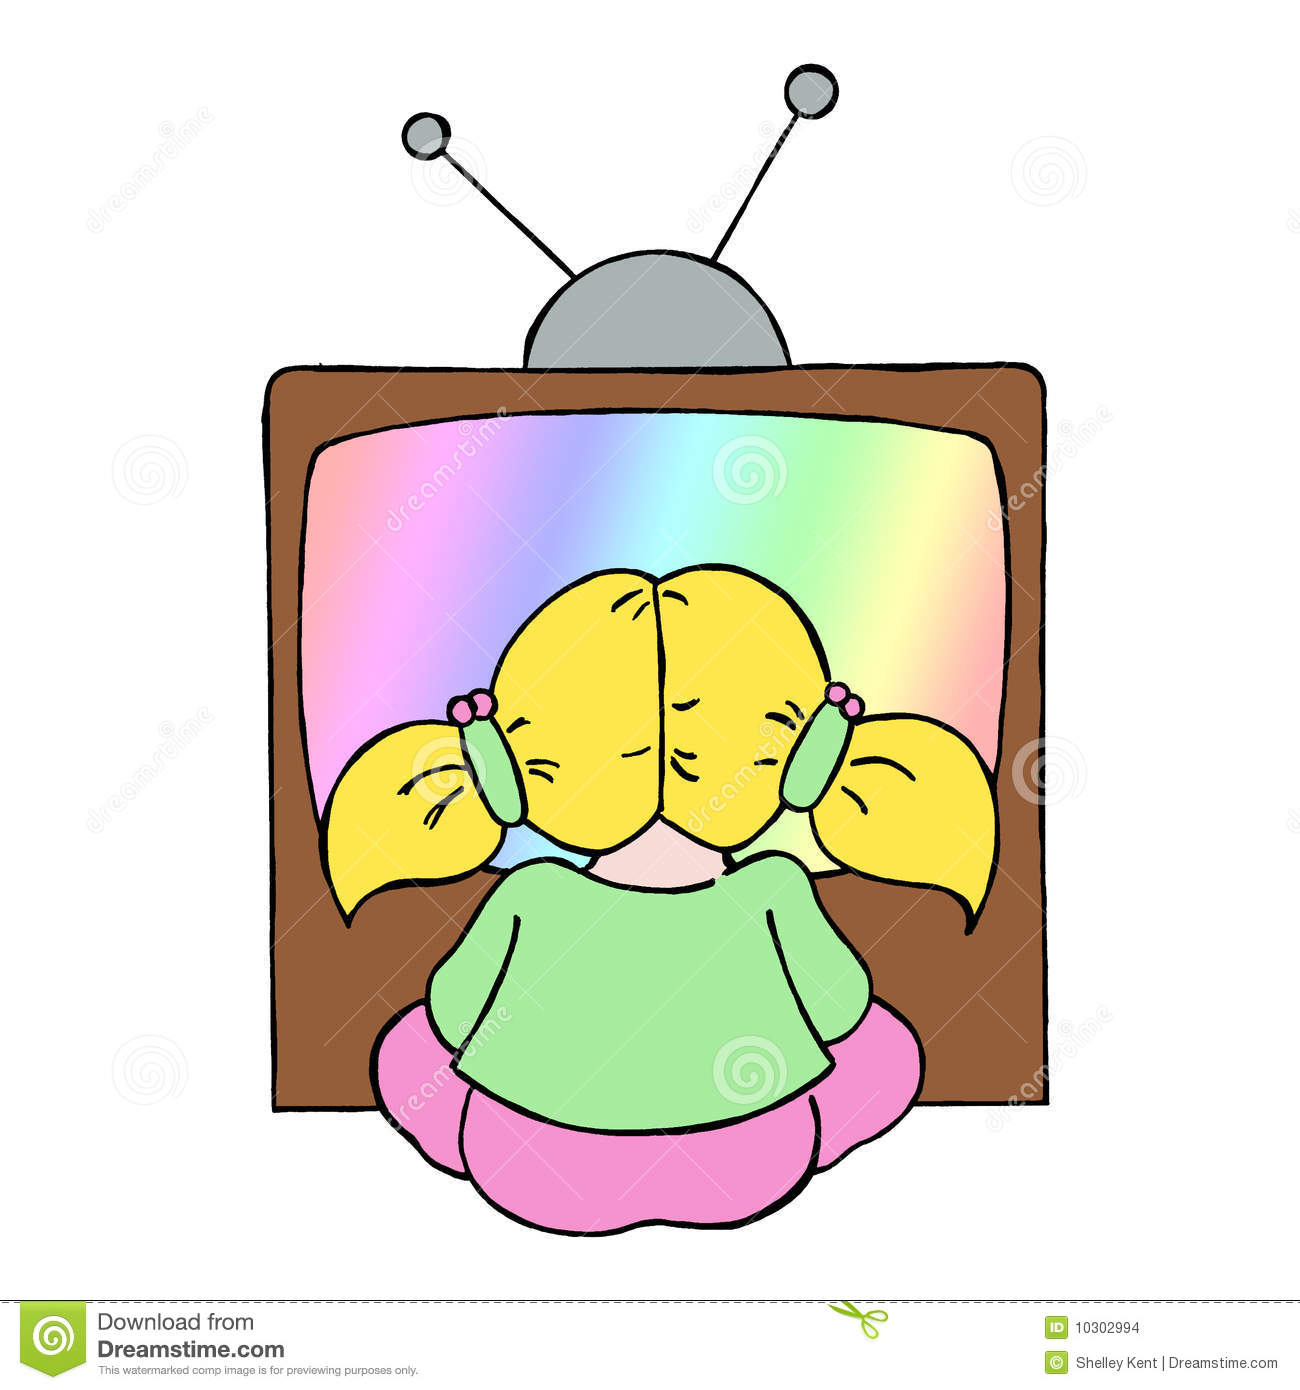 Colour line cartoon drawing of a young girl watching television.